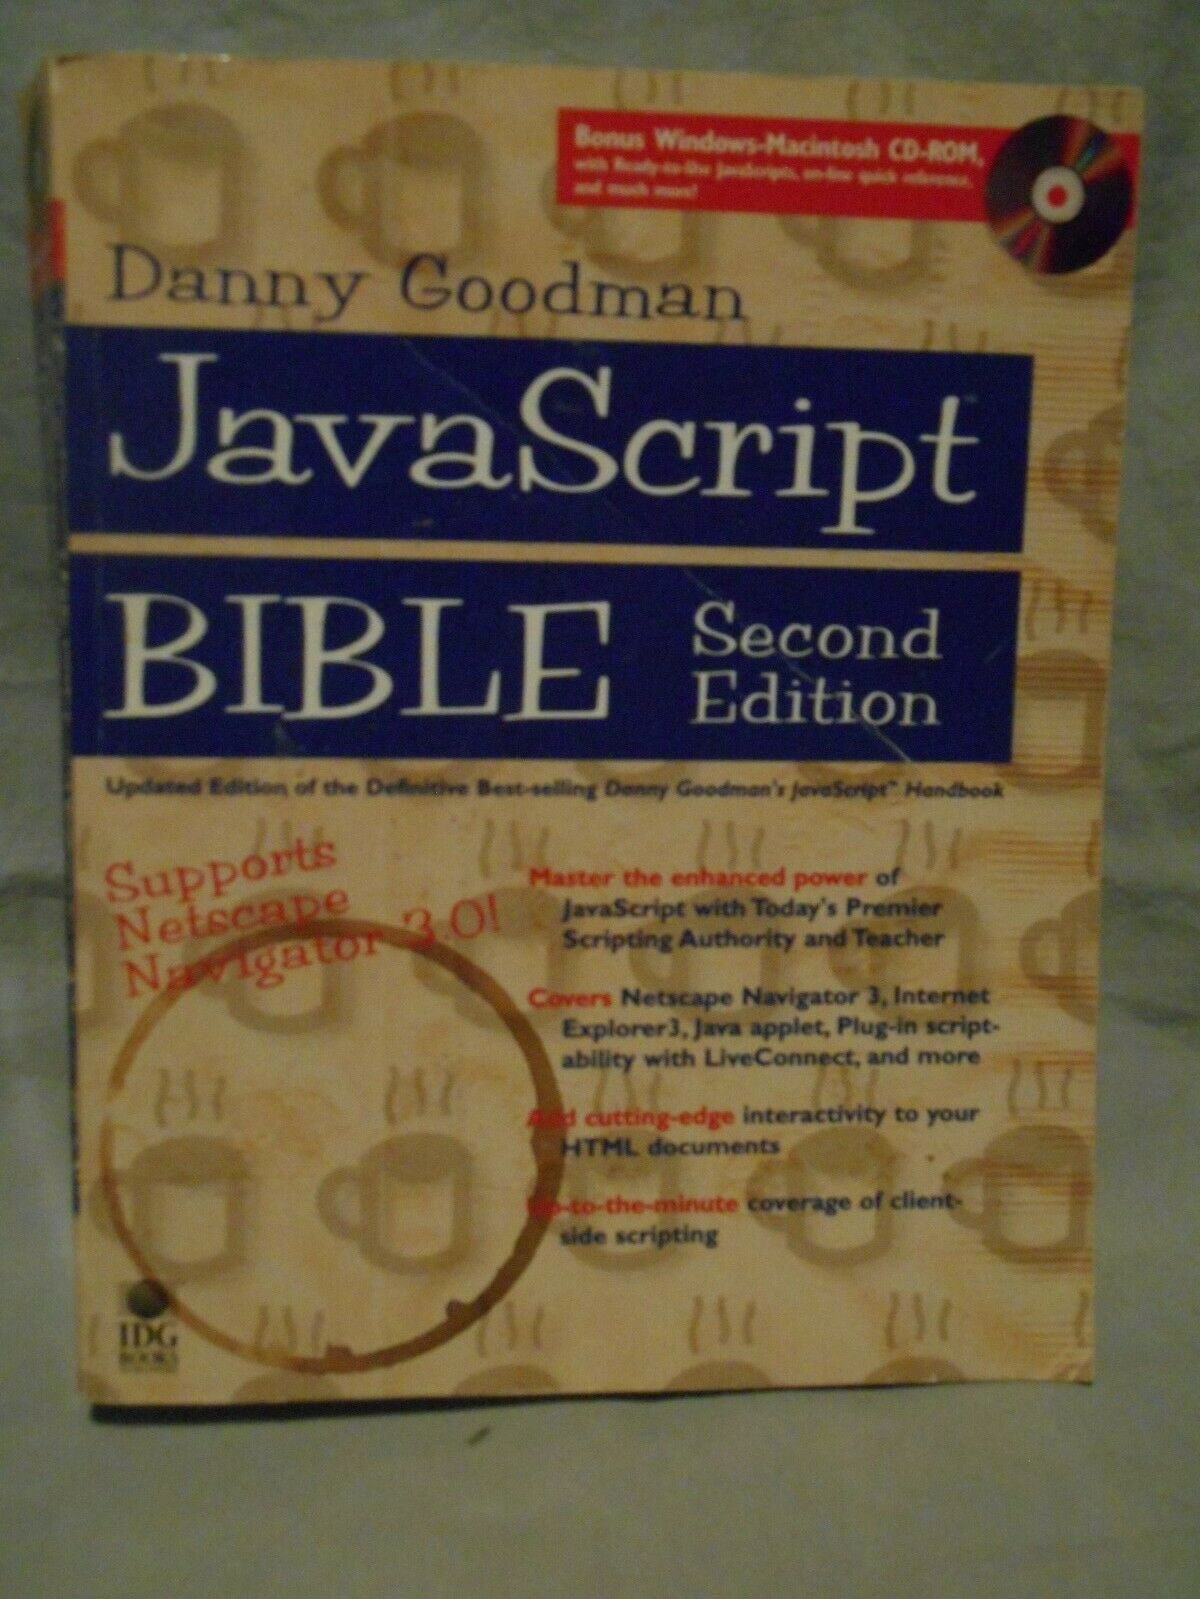 Java Script Bible 2nd edition with CD. |